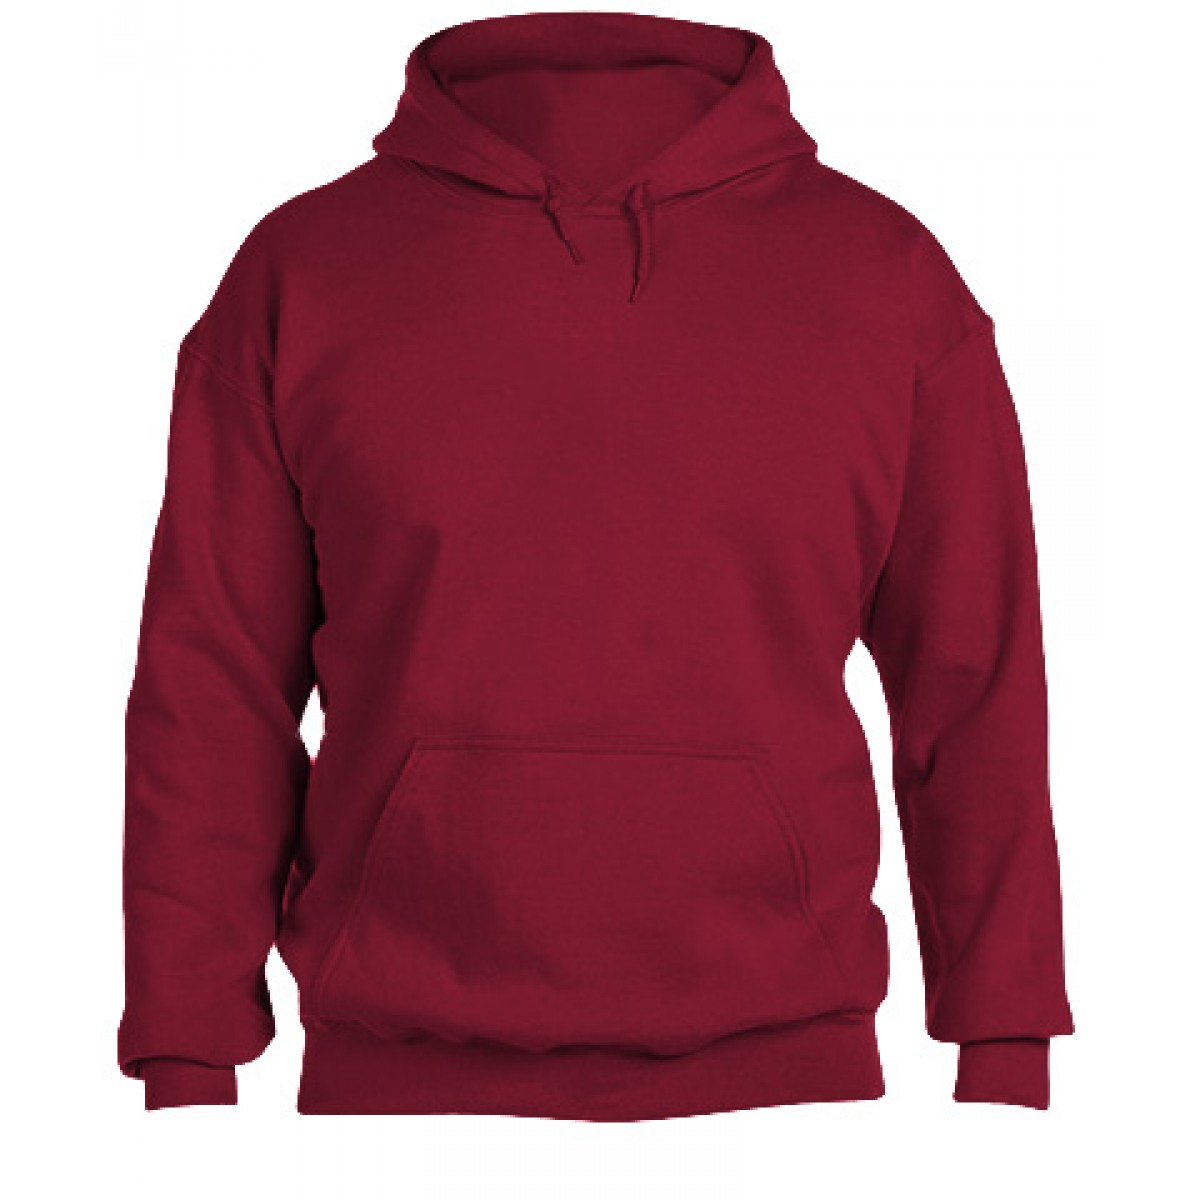 Hooded Sweatshirt 50/50 Heavy Blend -Cardinal Red-3XL